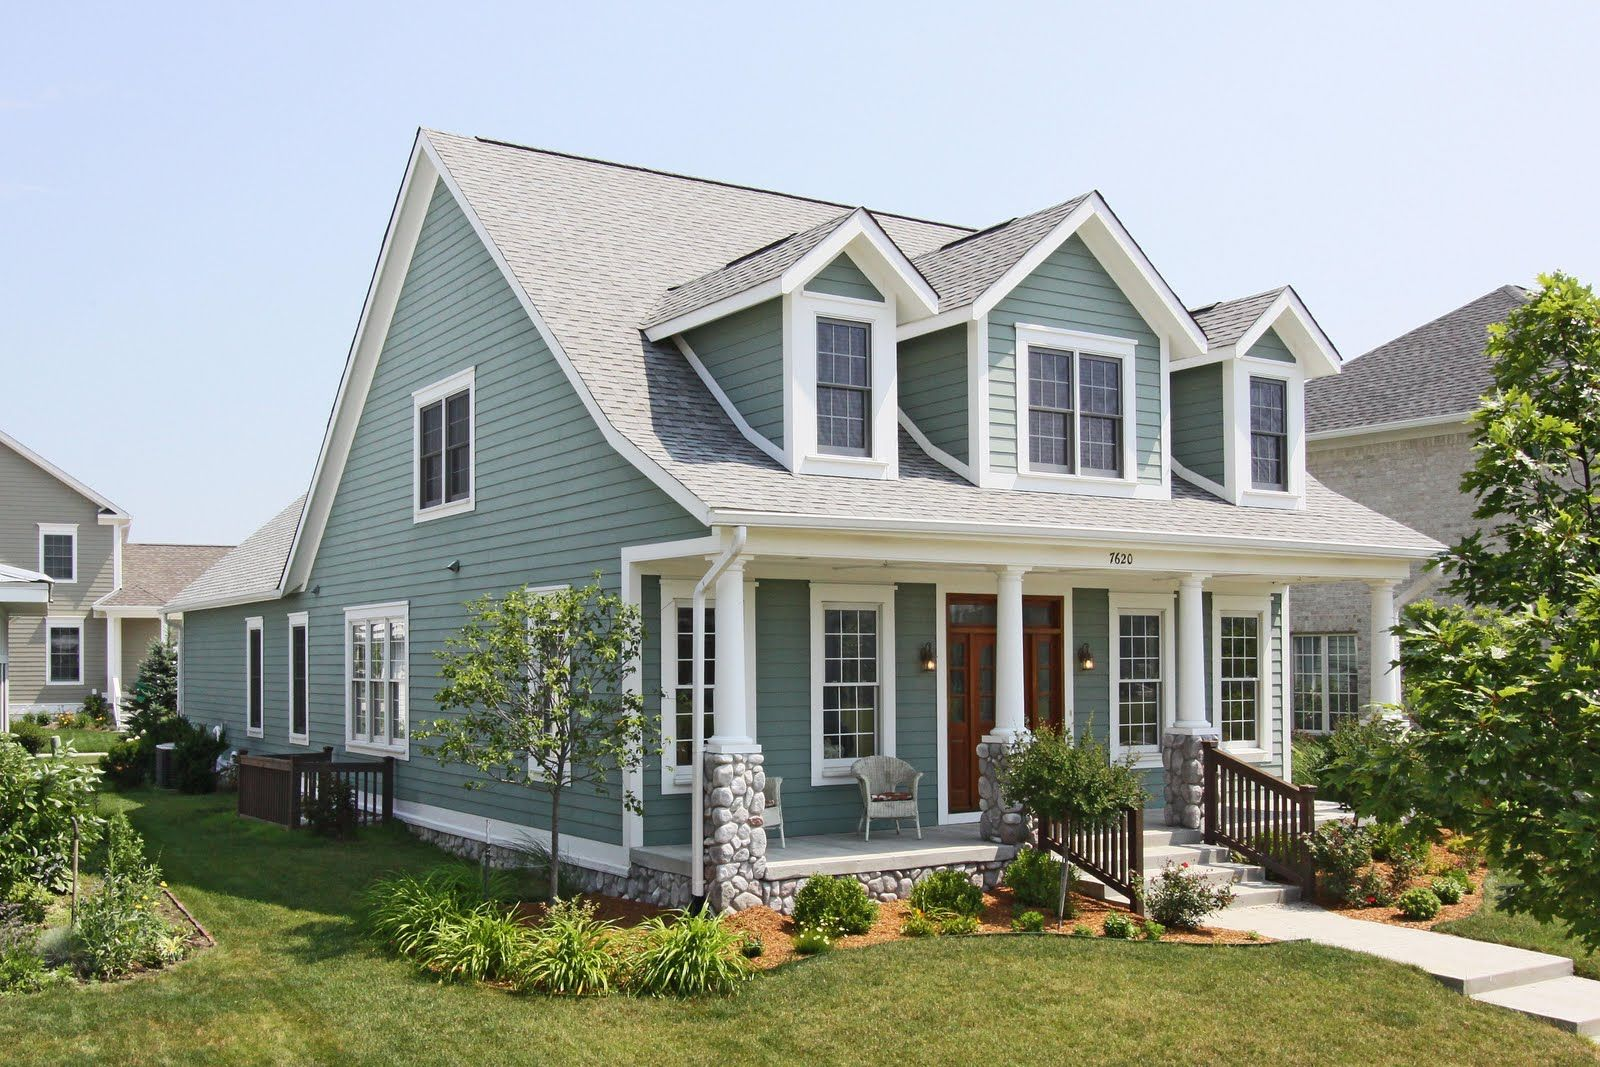 Cape cod homes with porches new listing in stonegate for House plans with dormers and front porch